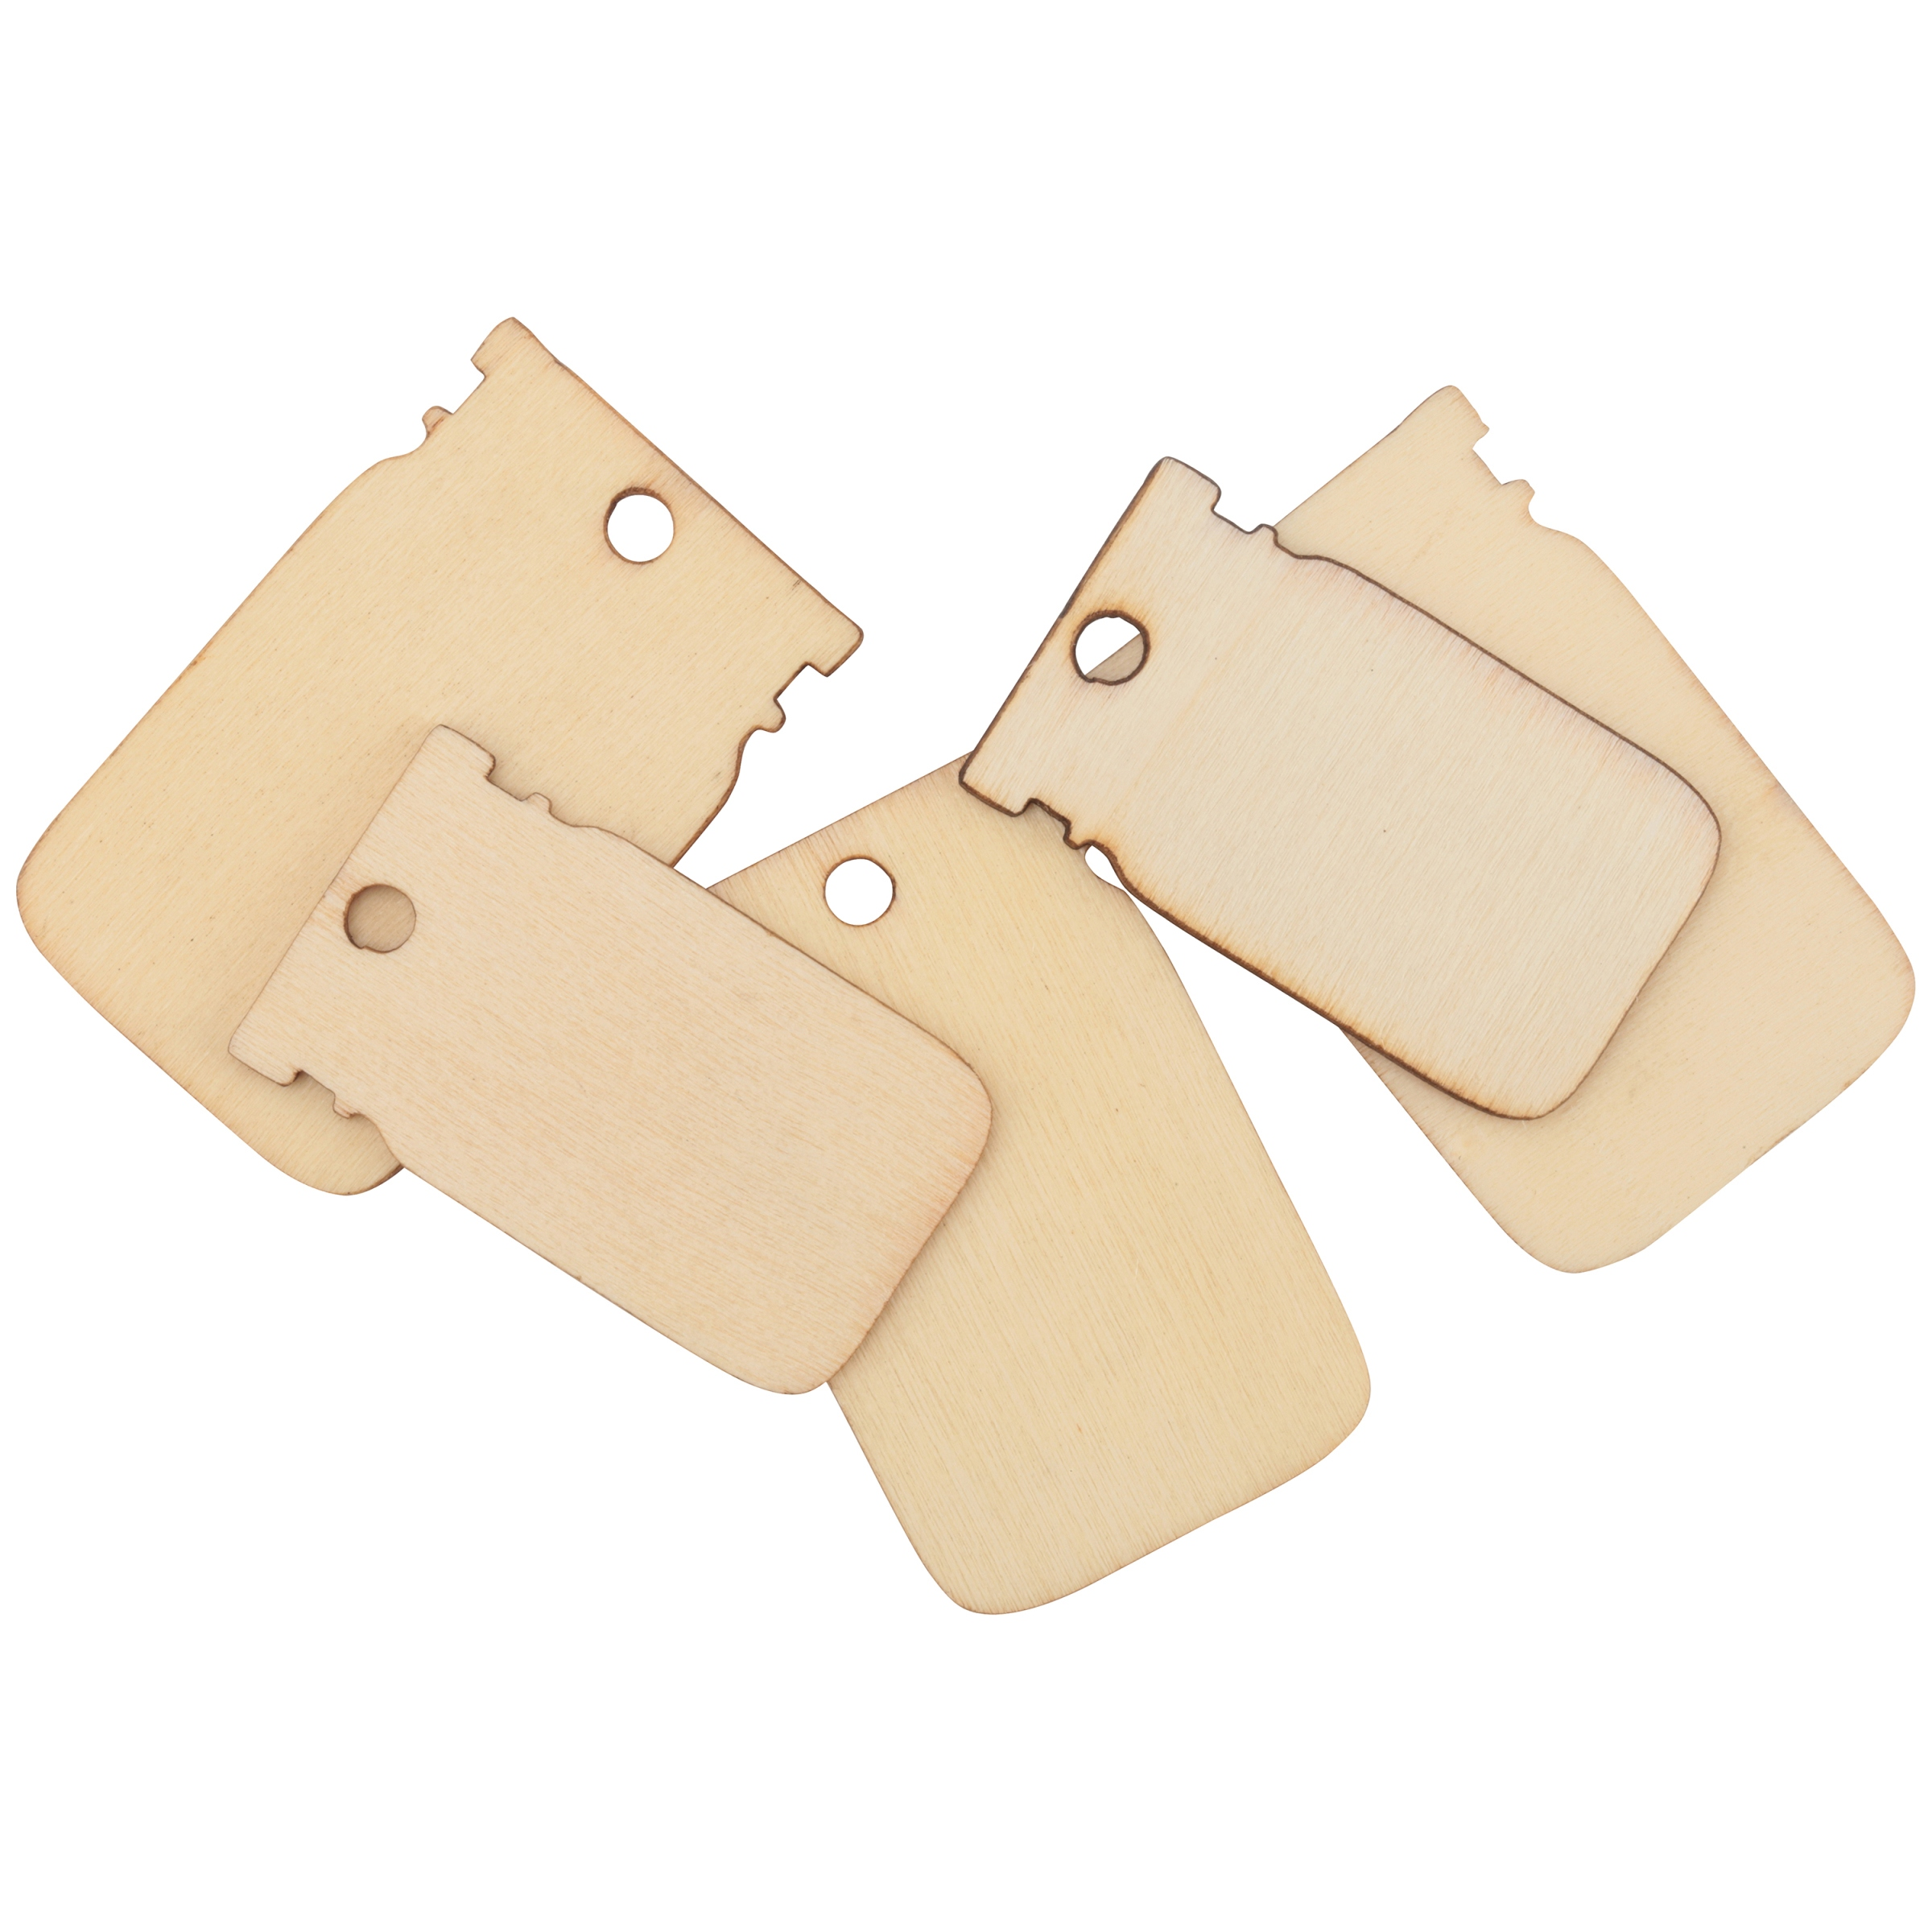 Lowe Cornell® Transform Mason™ Wooden Tags 12 ct Pack